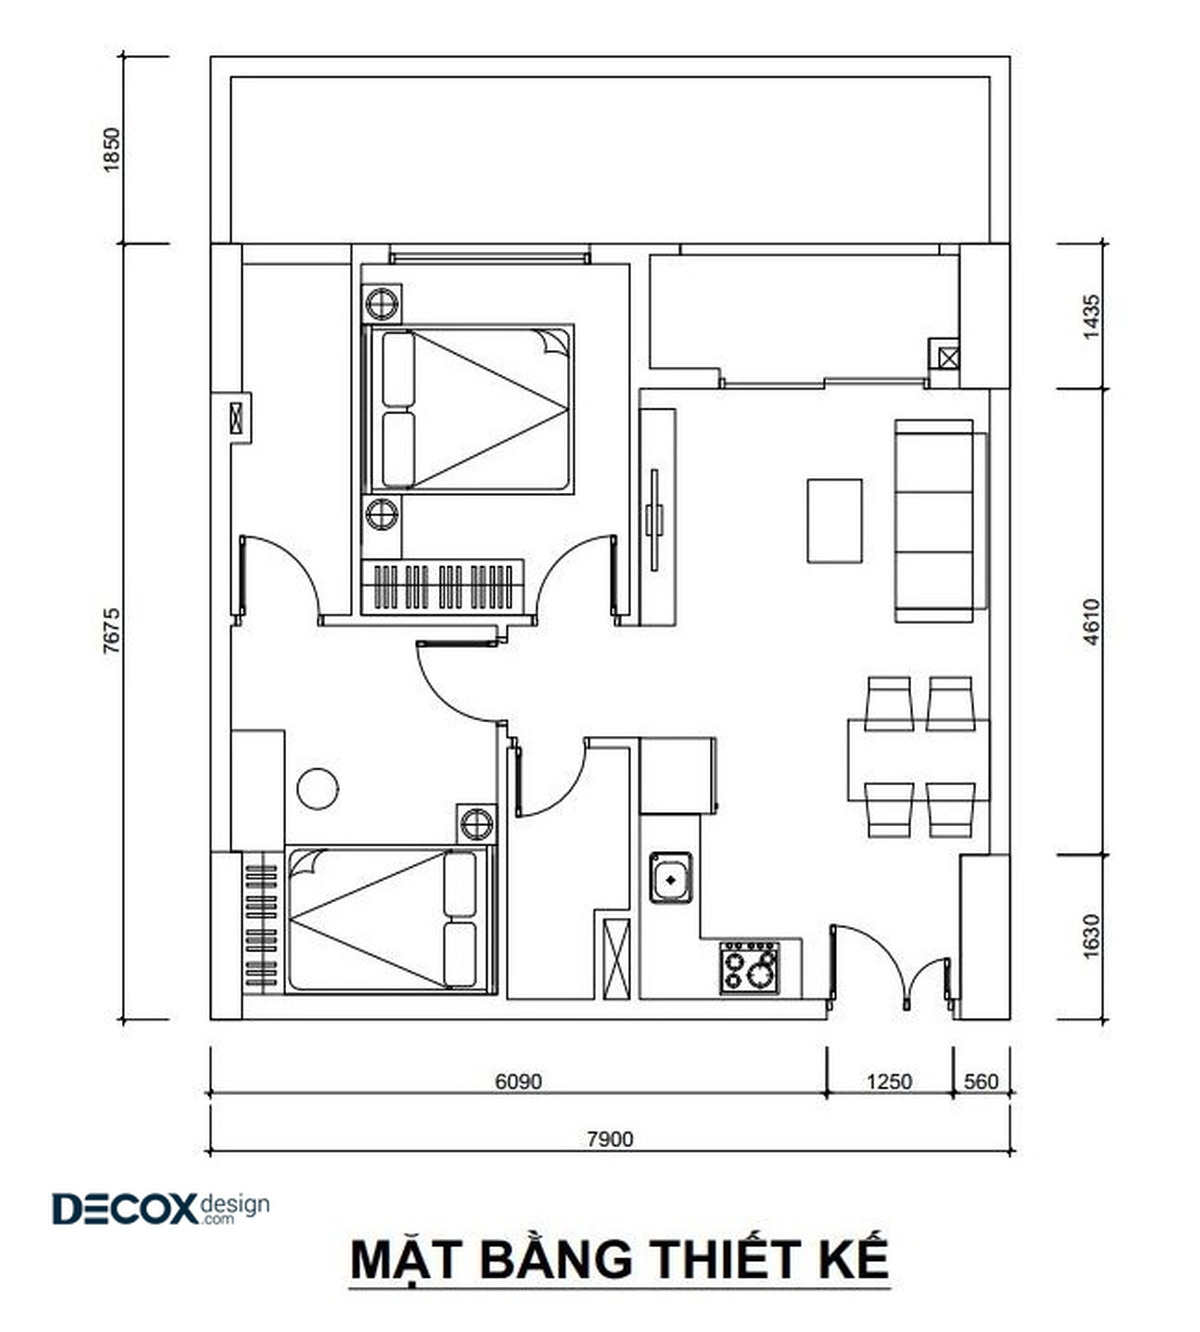 mat-bang-saigon-mia-min05-decoxdesign